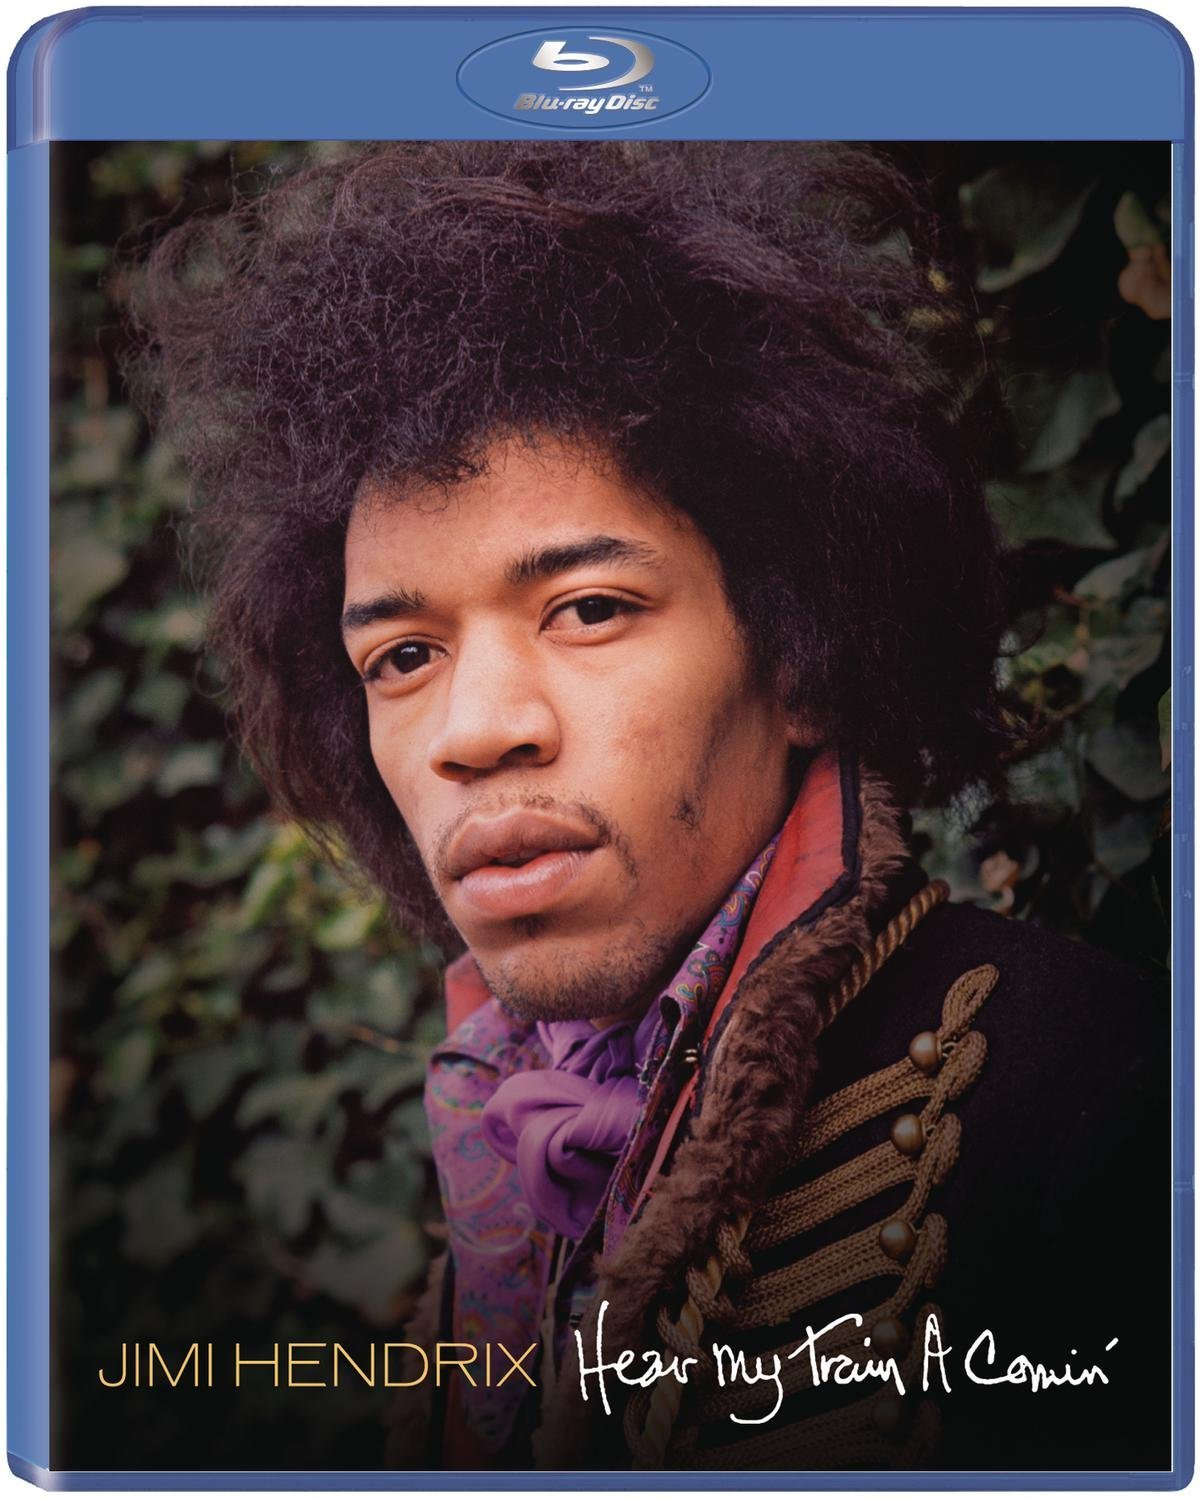 http://philspicks.files.wordpress.com/2013/11/jimi-hendrix-hear-my-train-a-comin.jpg